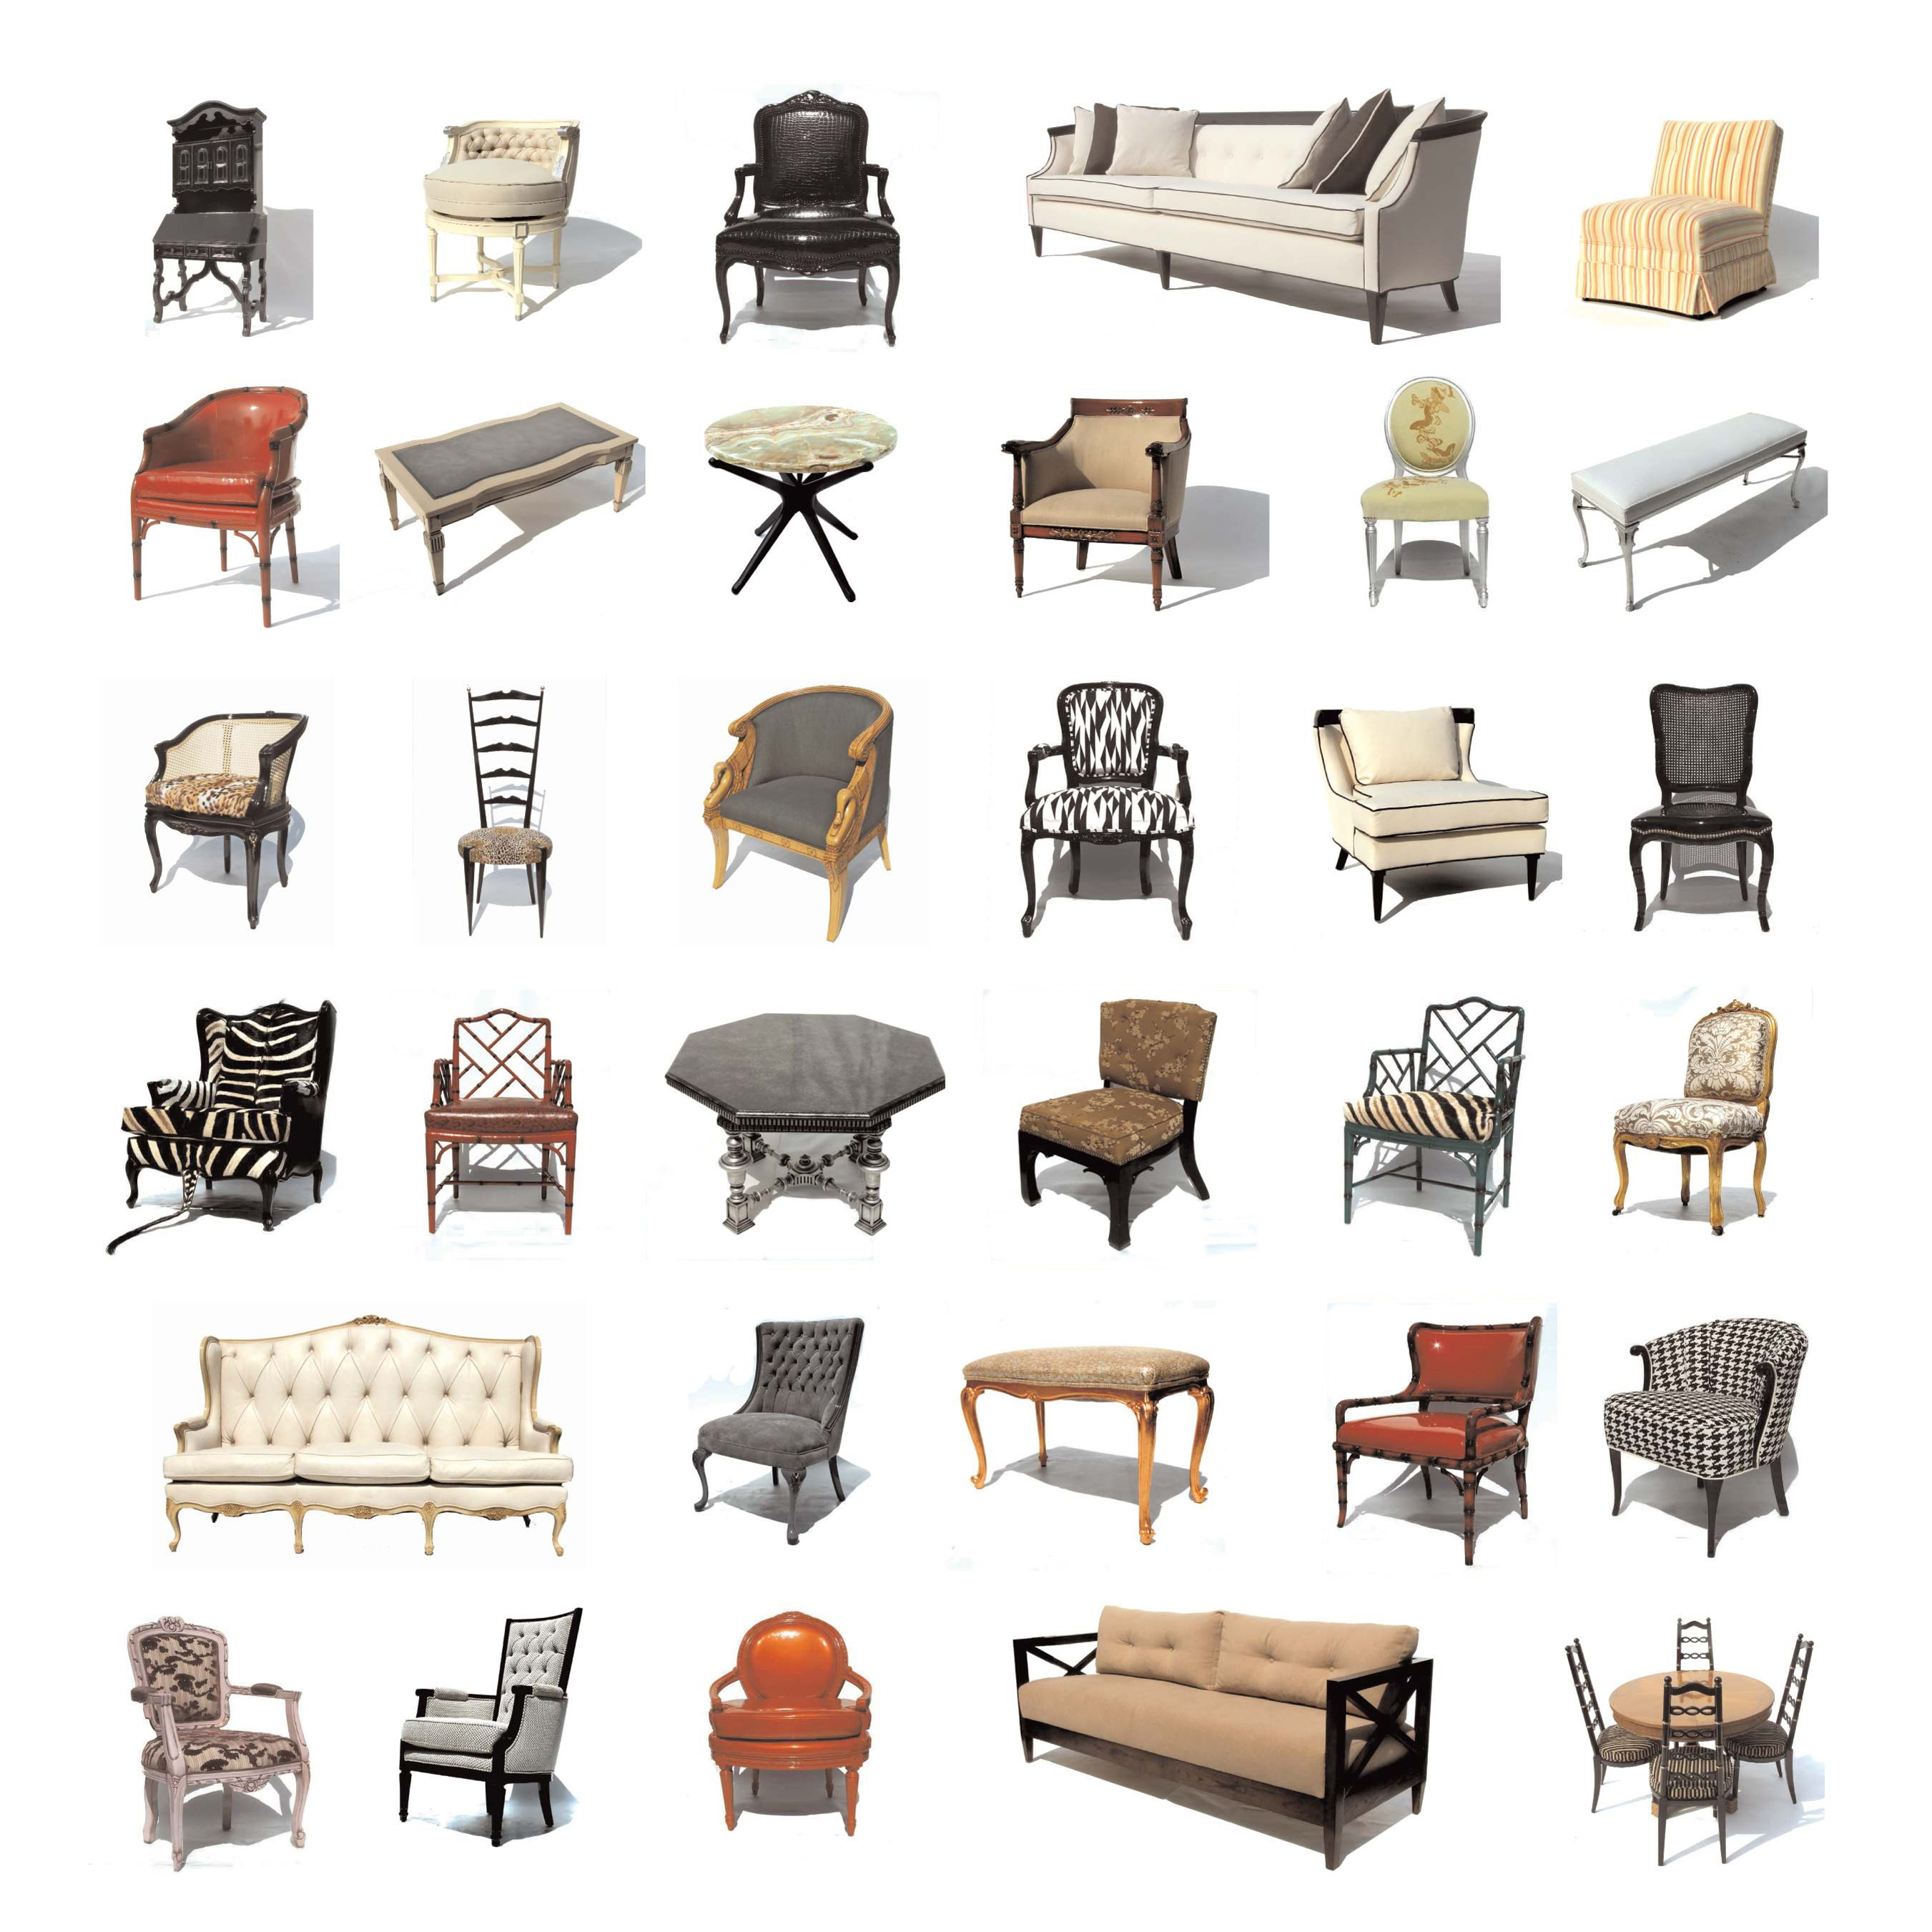 Furniture styles from the 1930\'s - 1950\'s | House | Pinterest ...